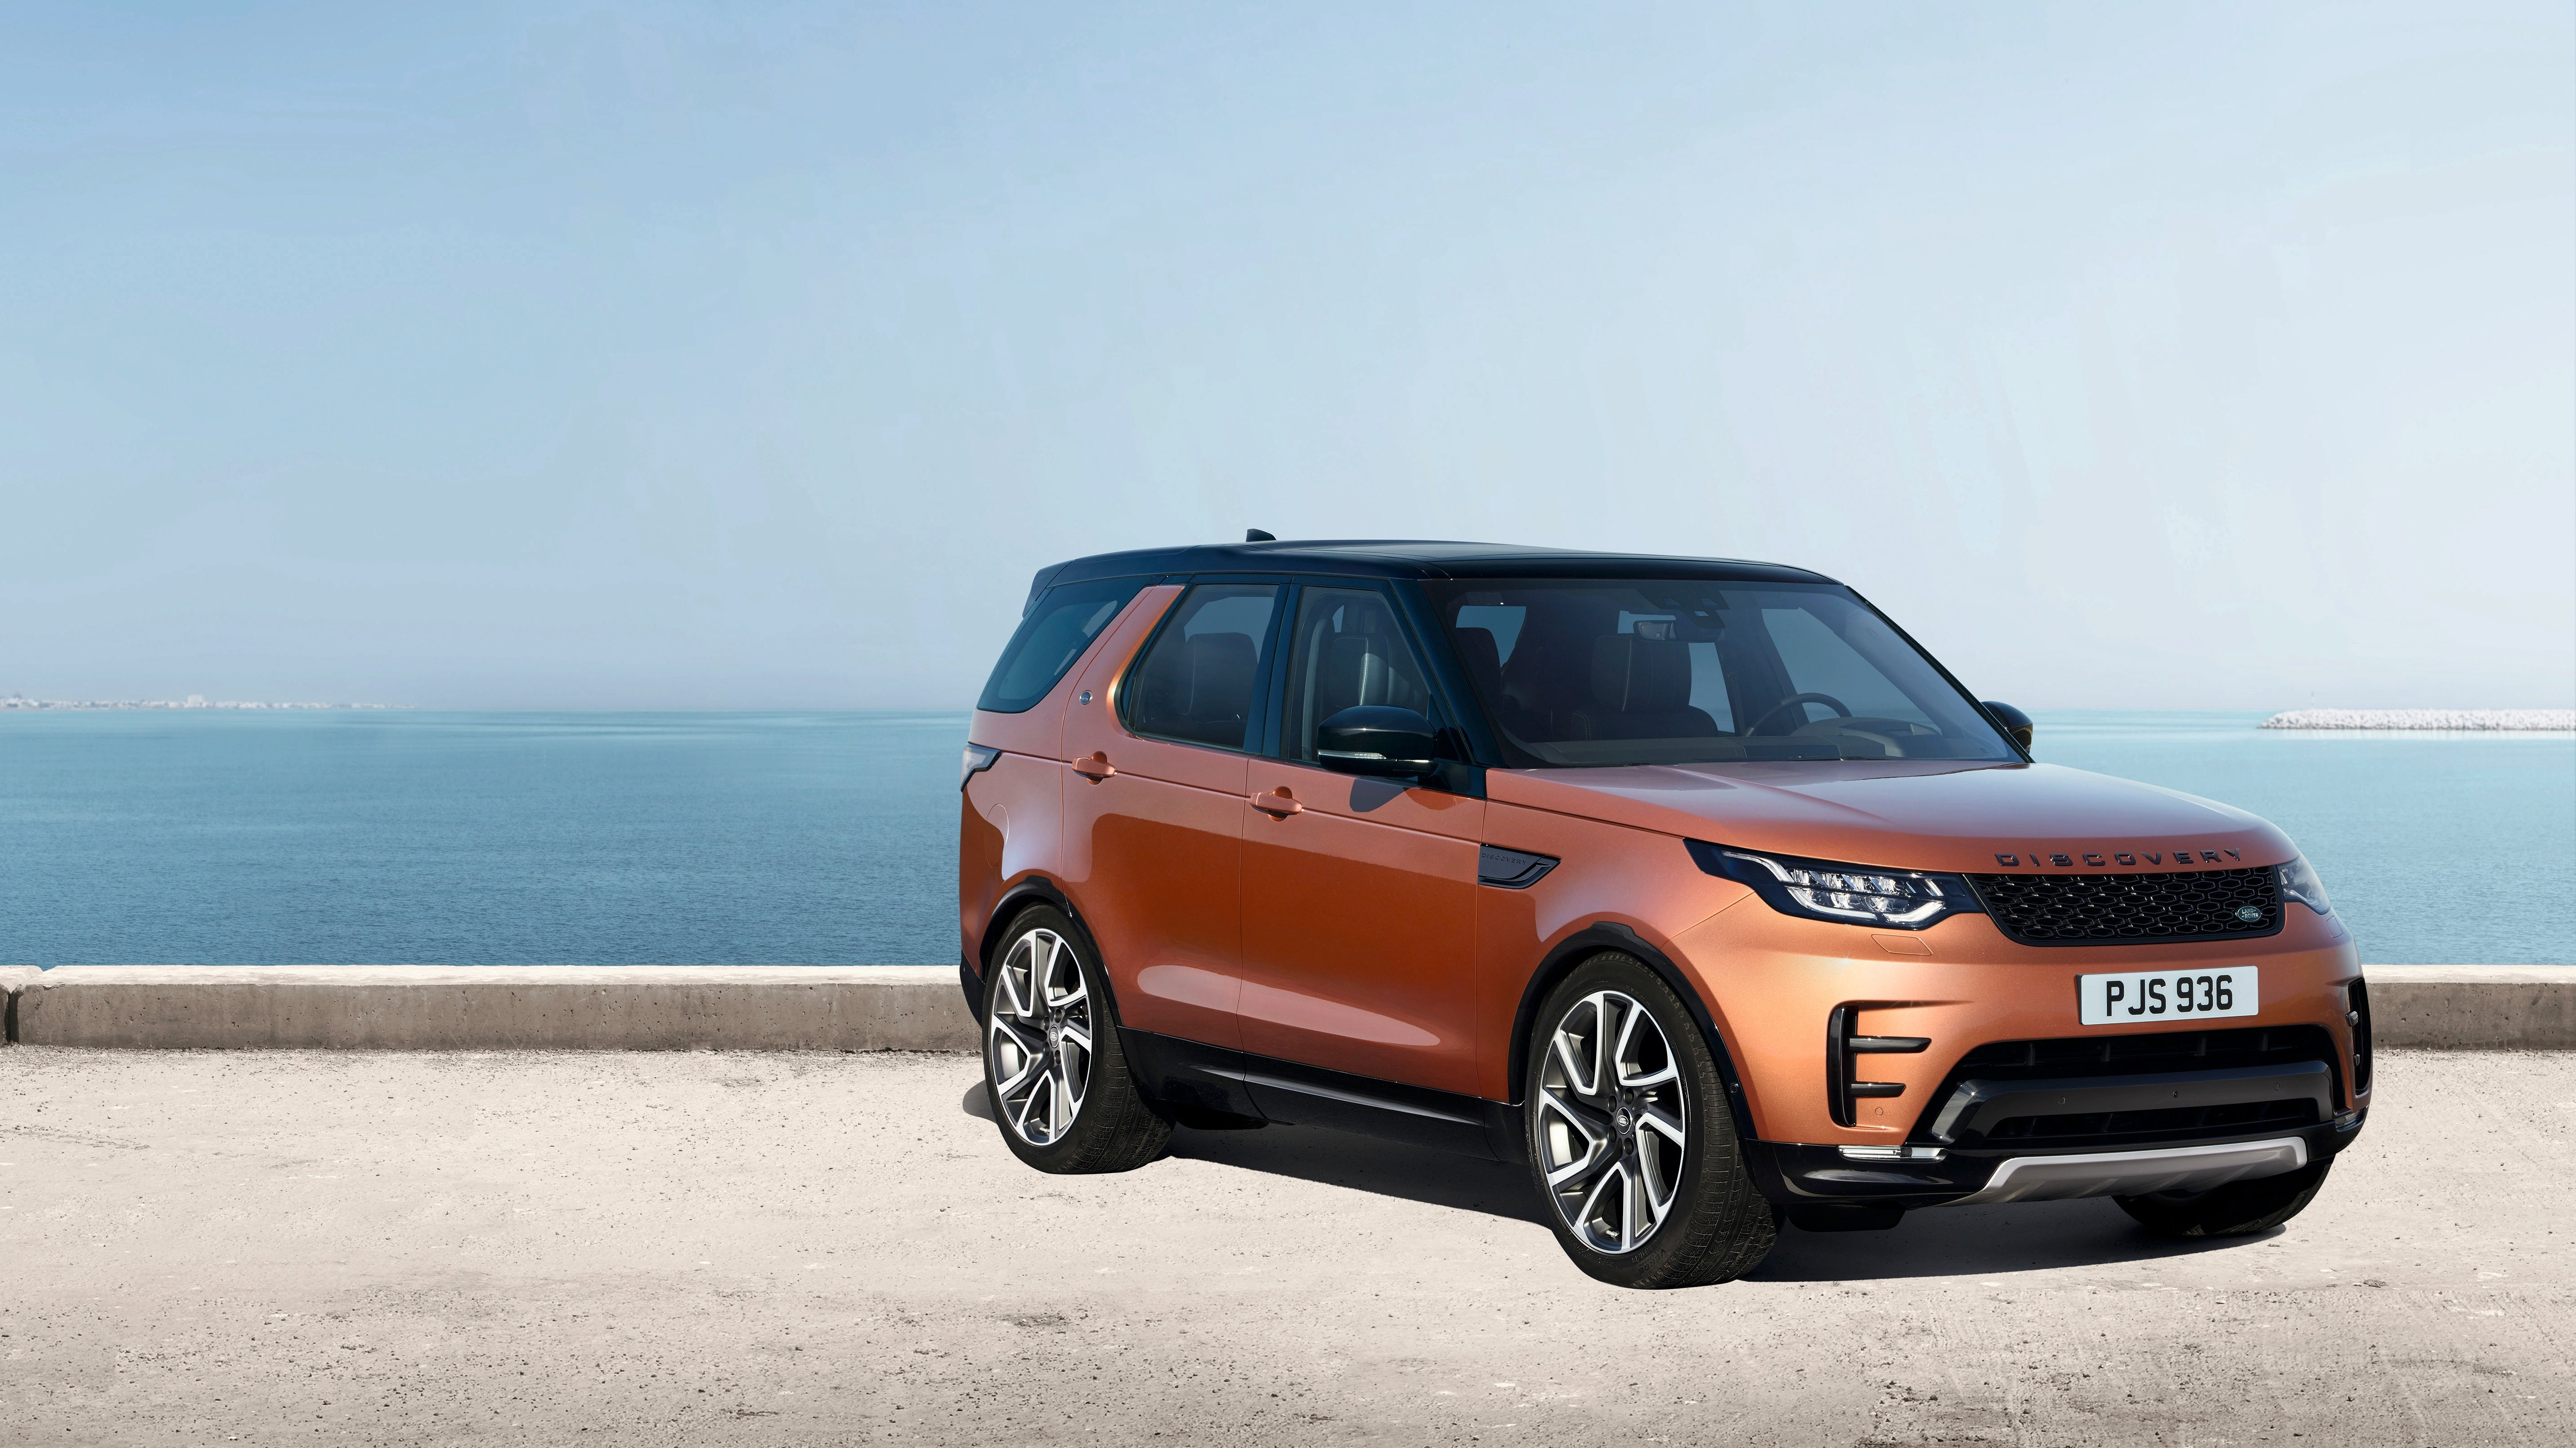 2017 land rover discovery revealed in paris full details on big new family suv photos caradvice. Black Bedroom Furniture Sets. Home Design Ideas